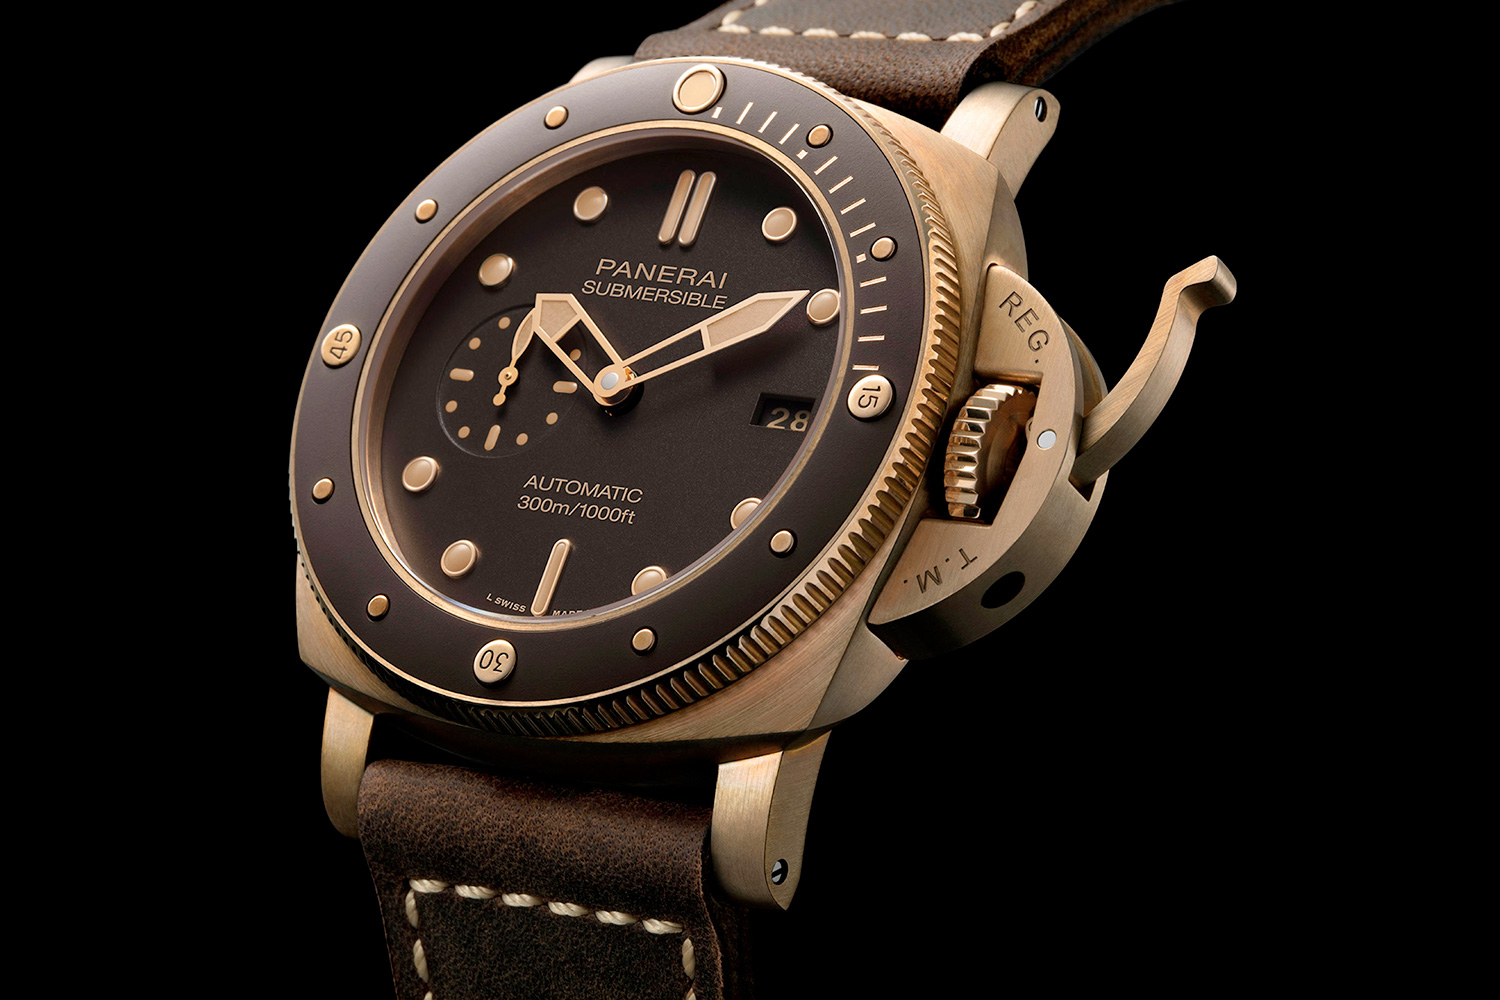 Panerai. Innovation and tradition